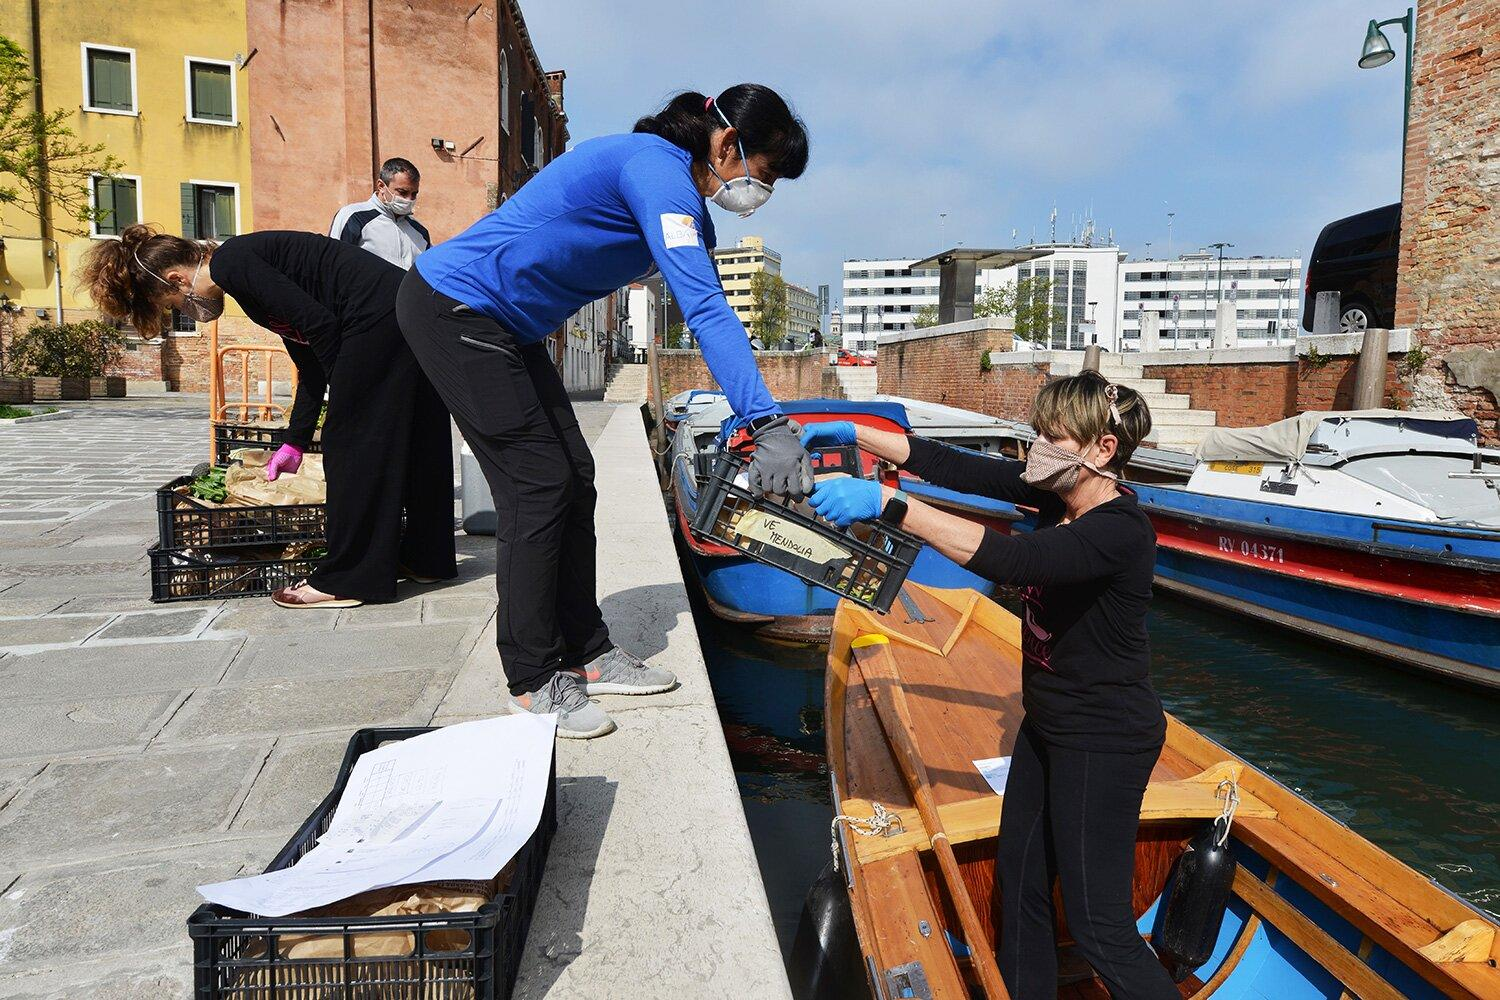 Female Rowers in Venice Using Gondolas to Deliver Groceries to ...